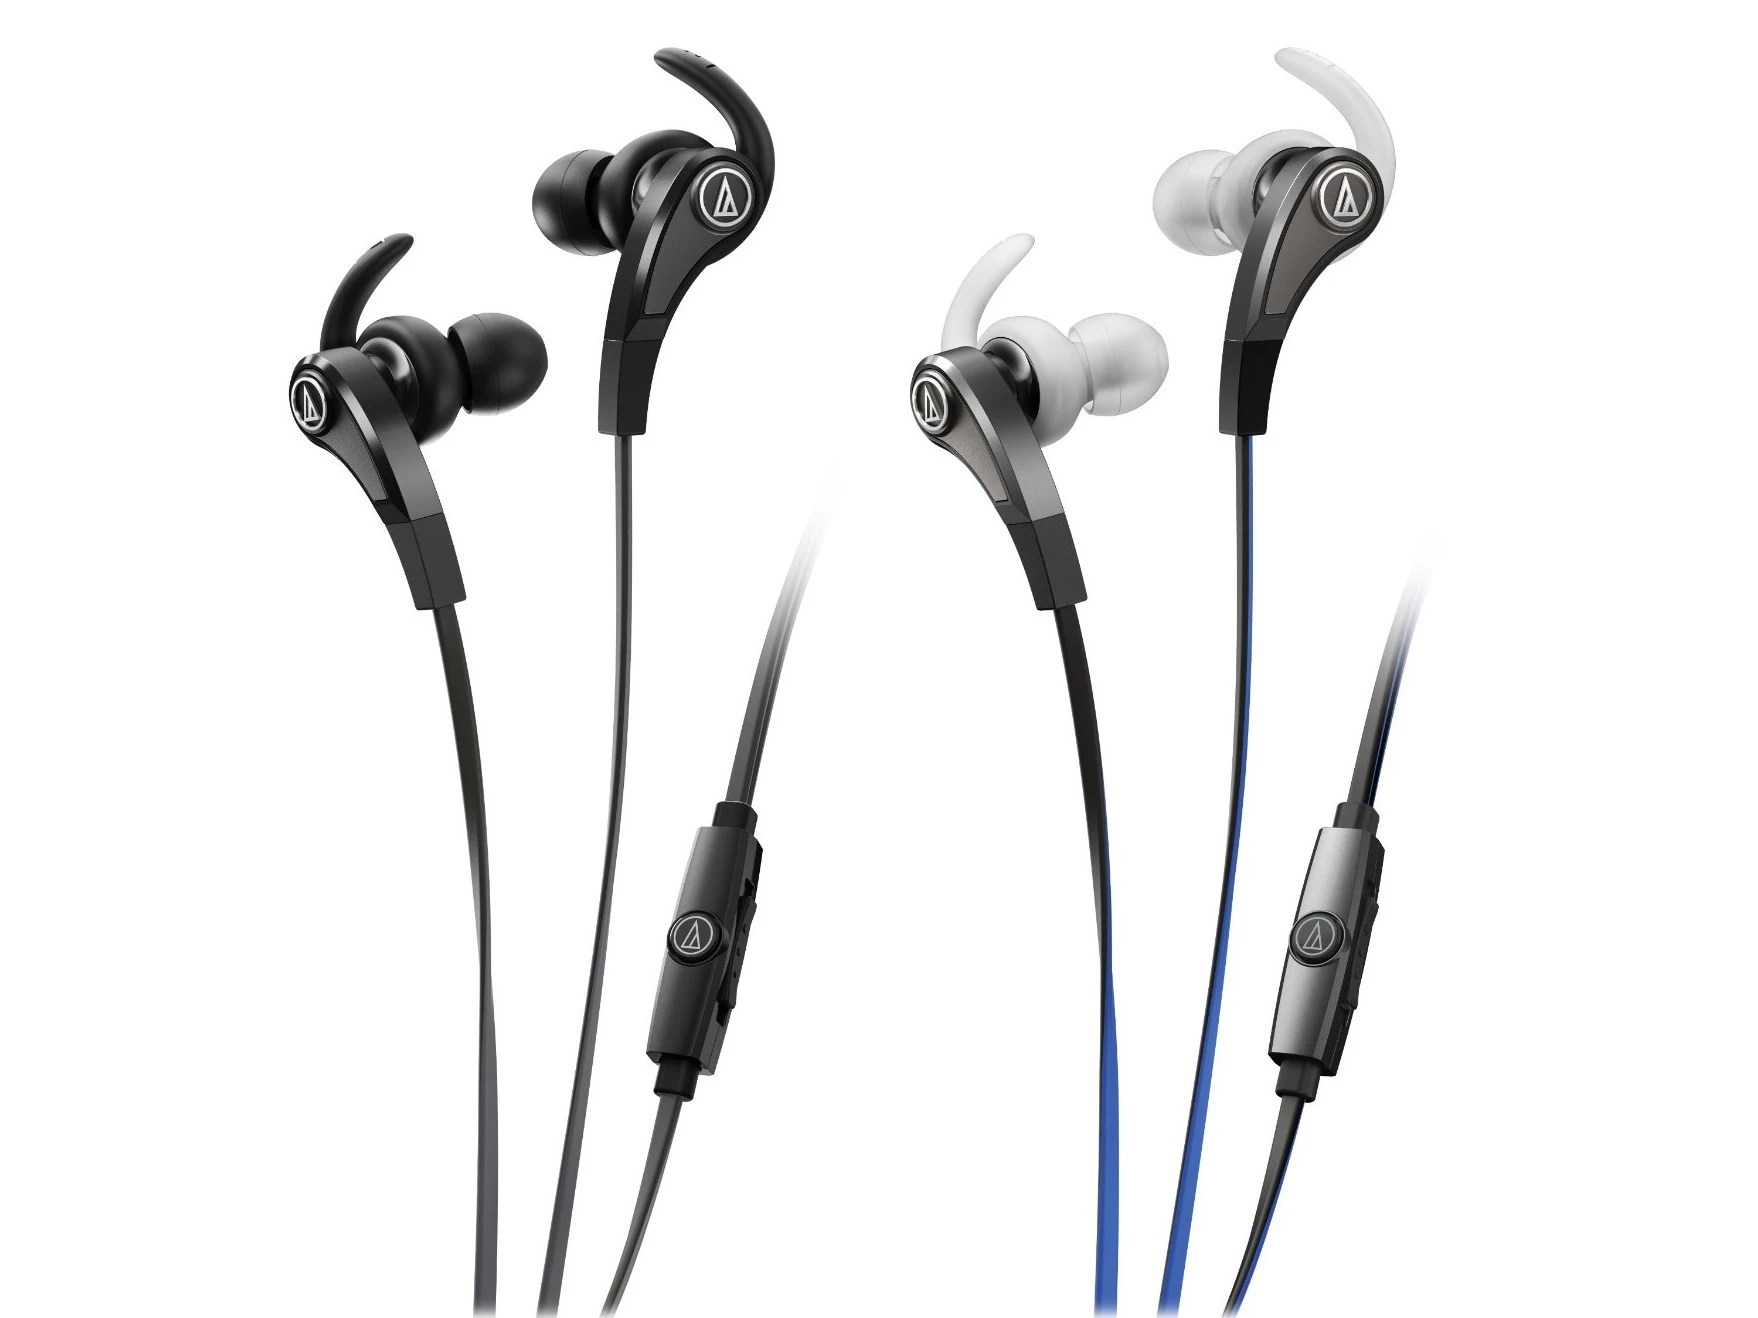 15 Best Hi Fi Earbuds For Your Android Iphone And Other Devices